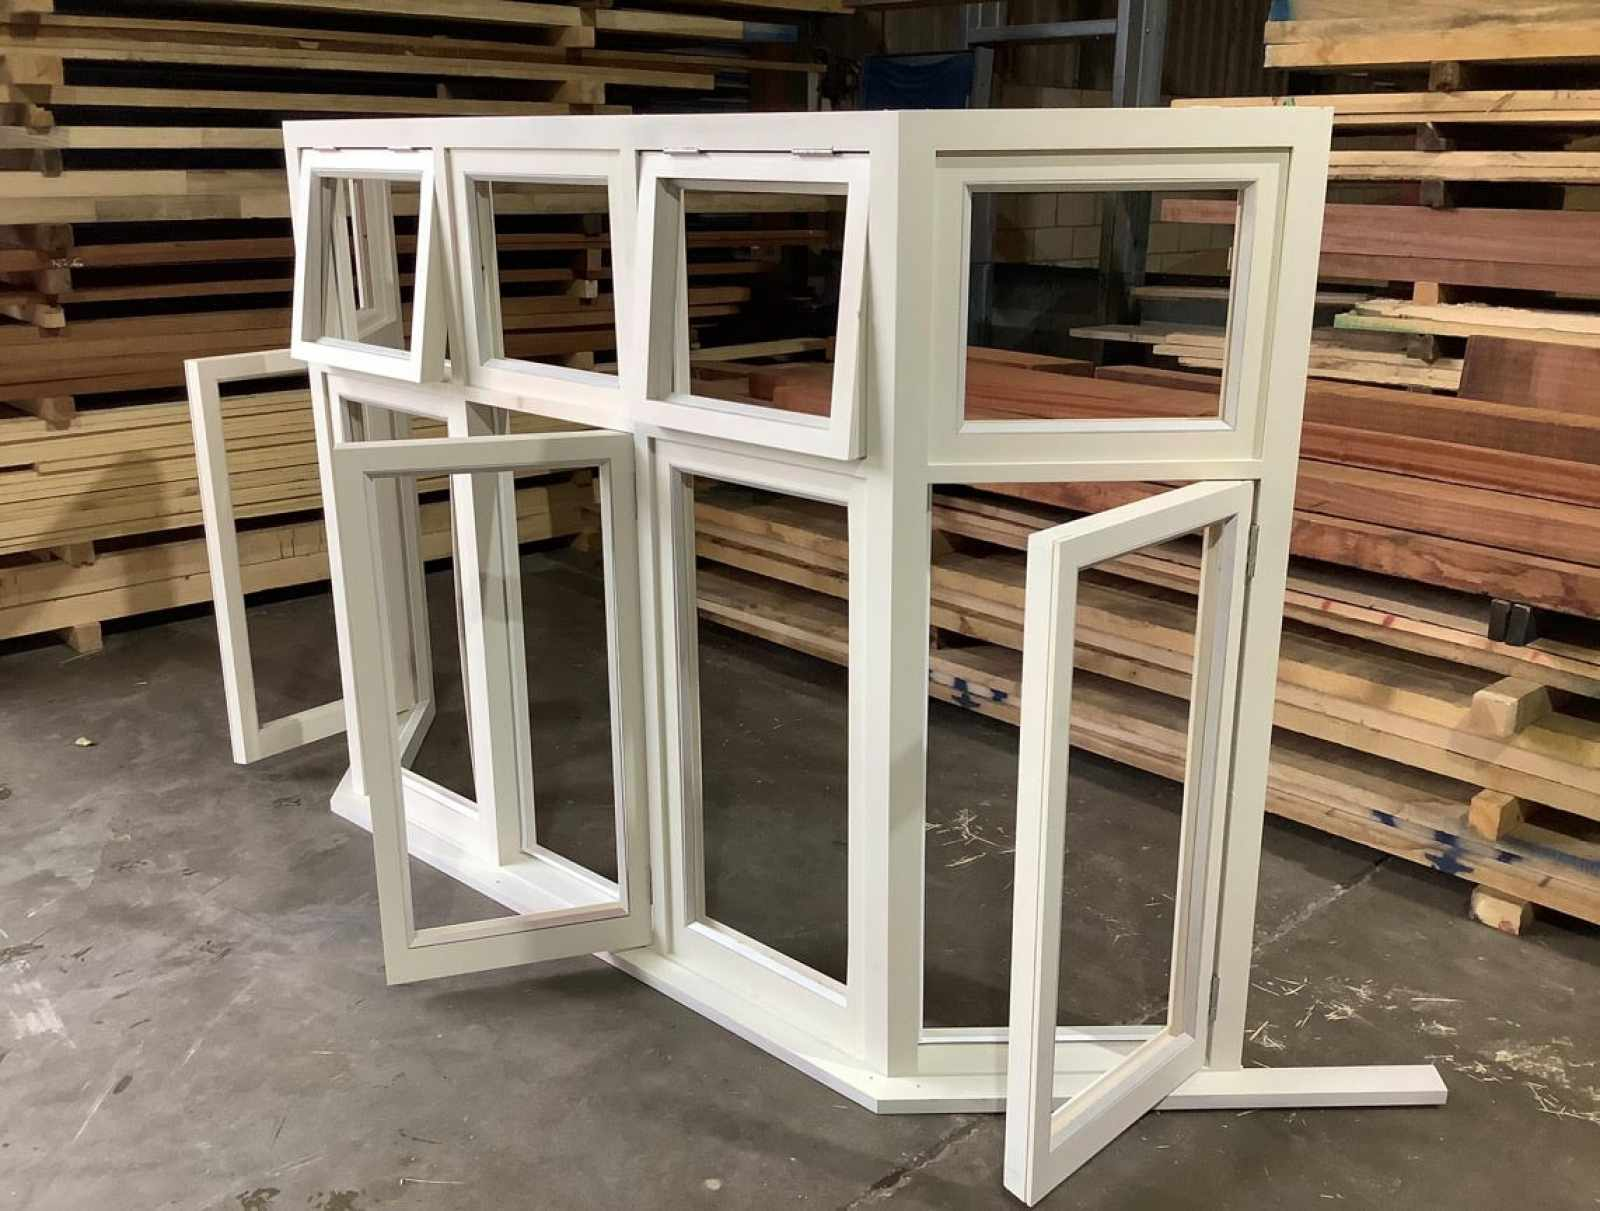 Casement bay window in our fully working joinery shop